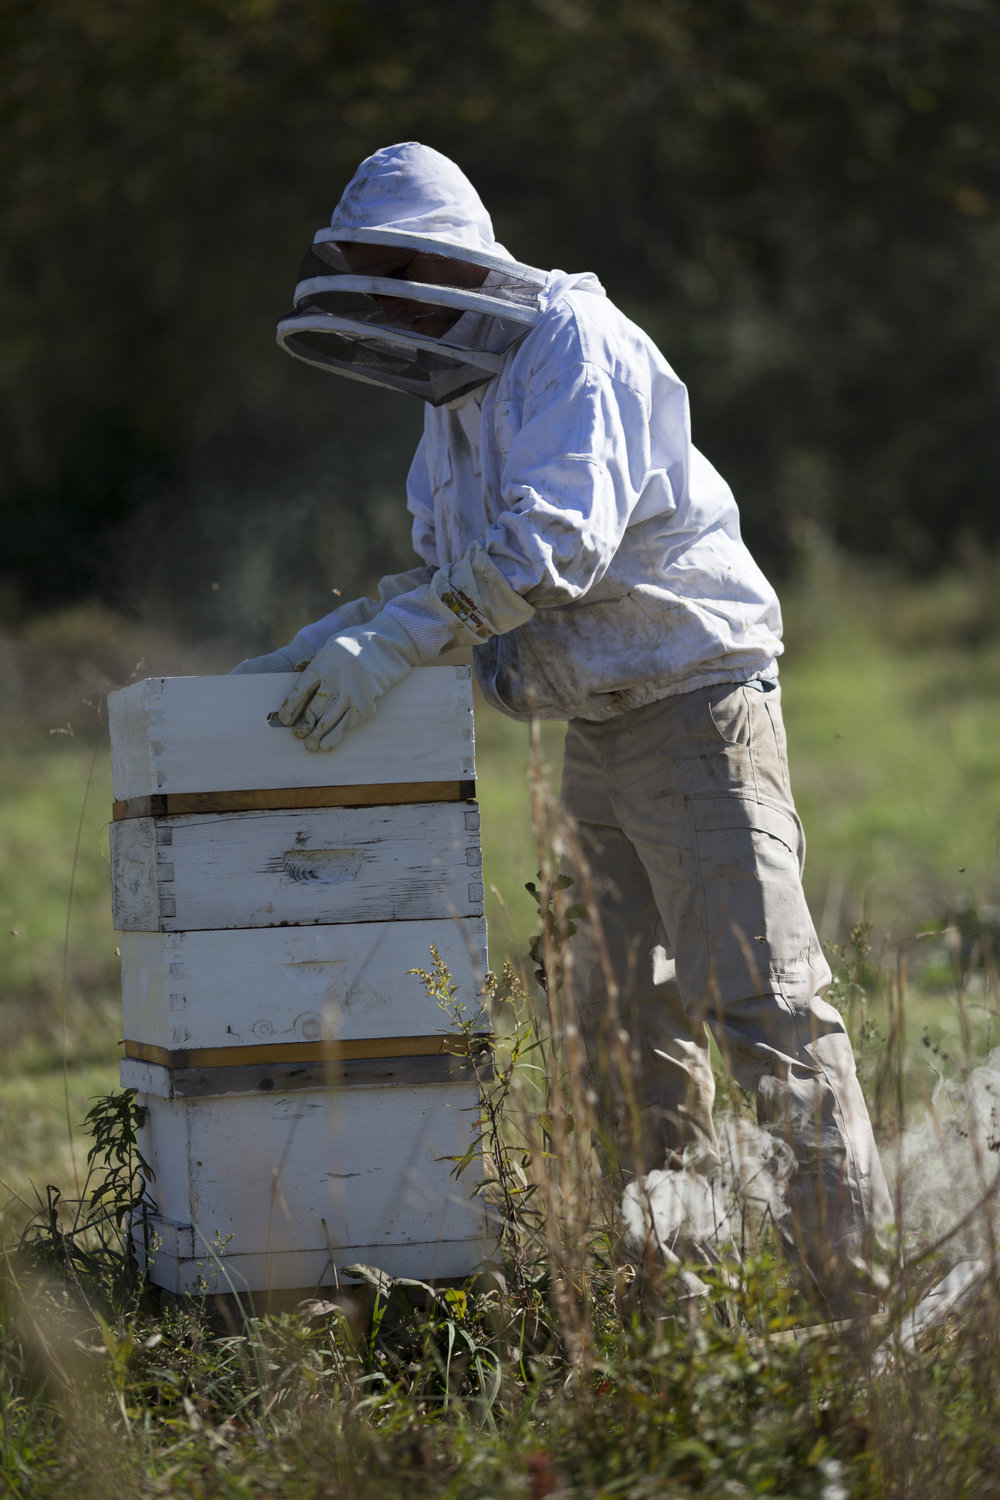 Homecoming Farms Owner John Wood checks on his bees before they rest for the winter in Amesville, Ohio, on October 20, 2017.